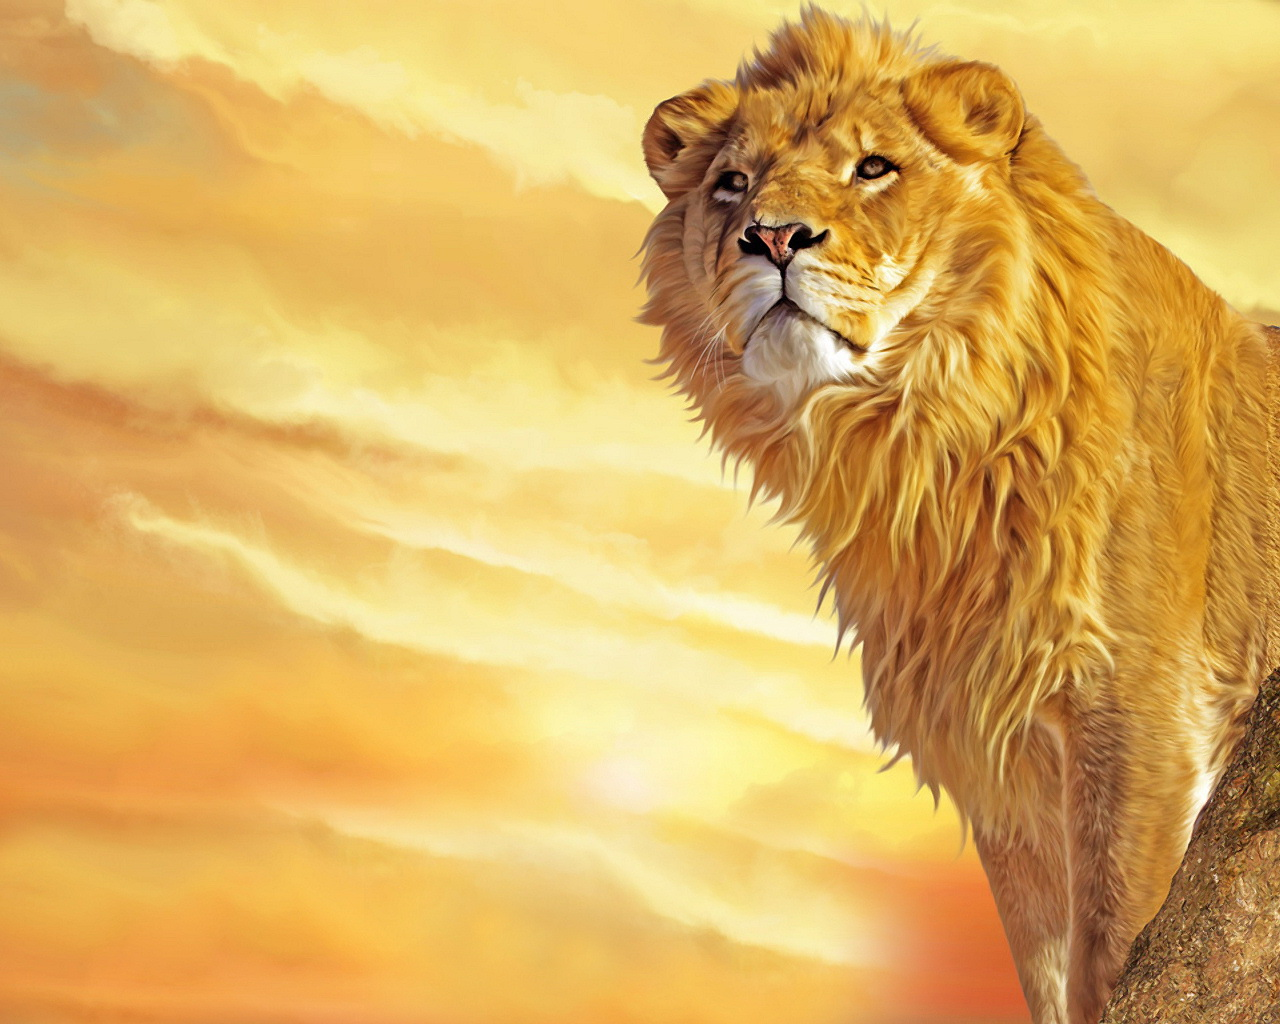 Lion HD Wallpapers African Lions Pictures Animal Photo 1280x1024